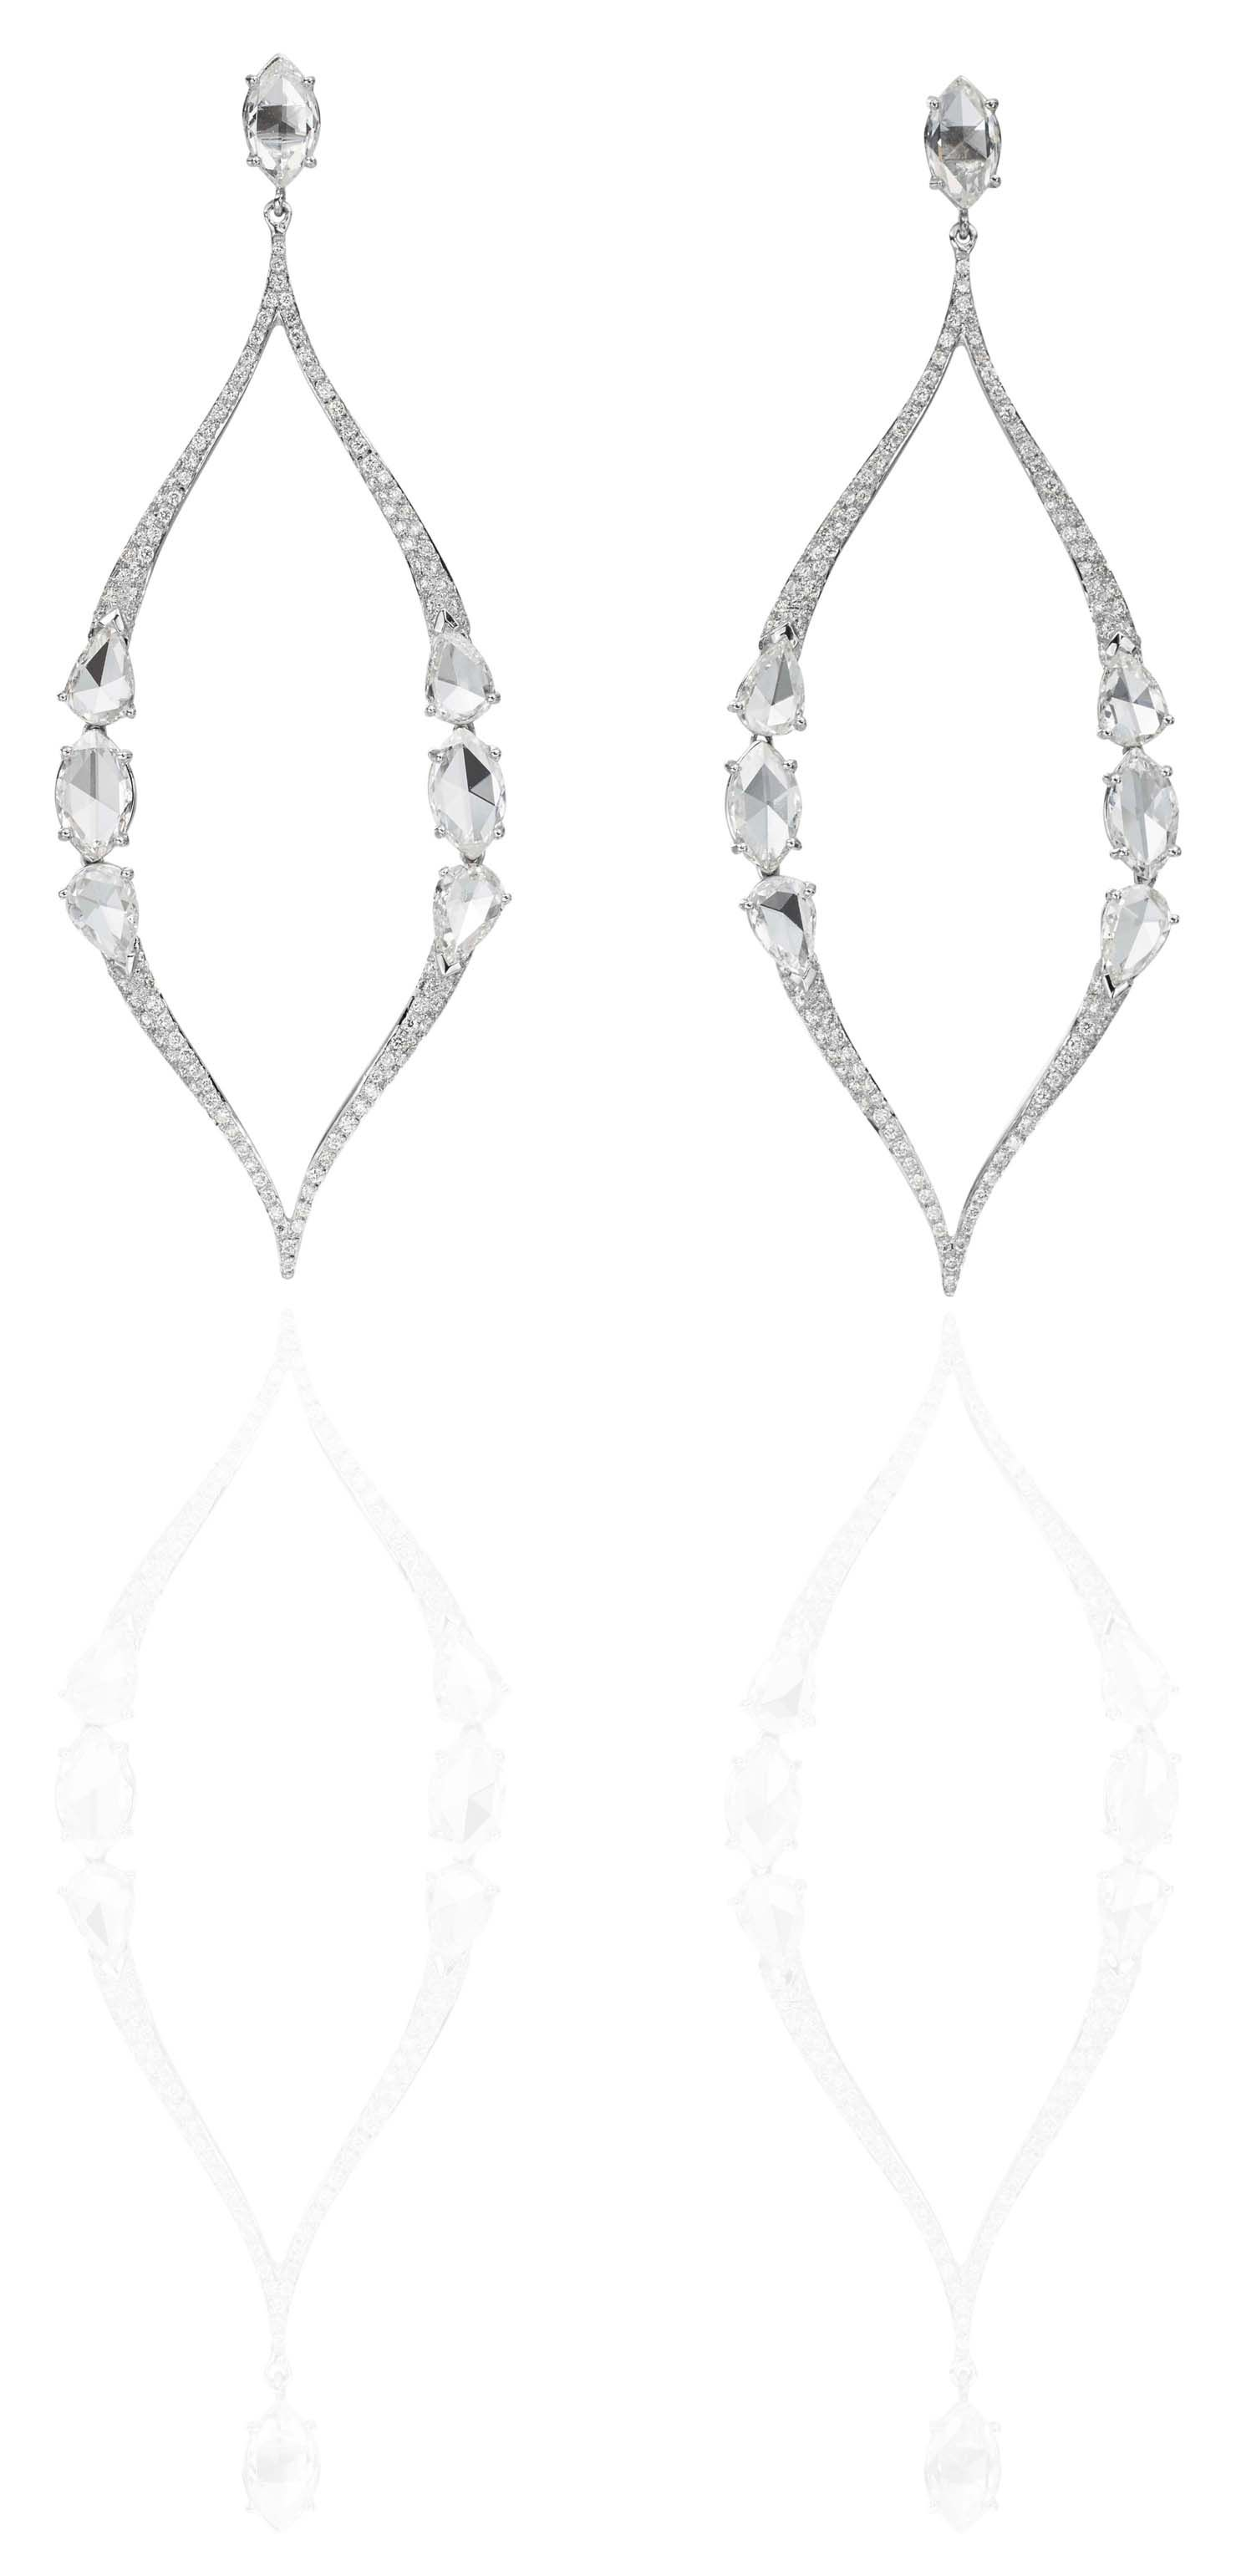 Round and rose cut diamond earrings.